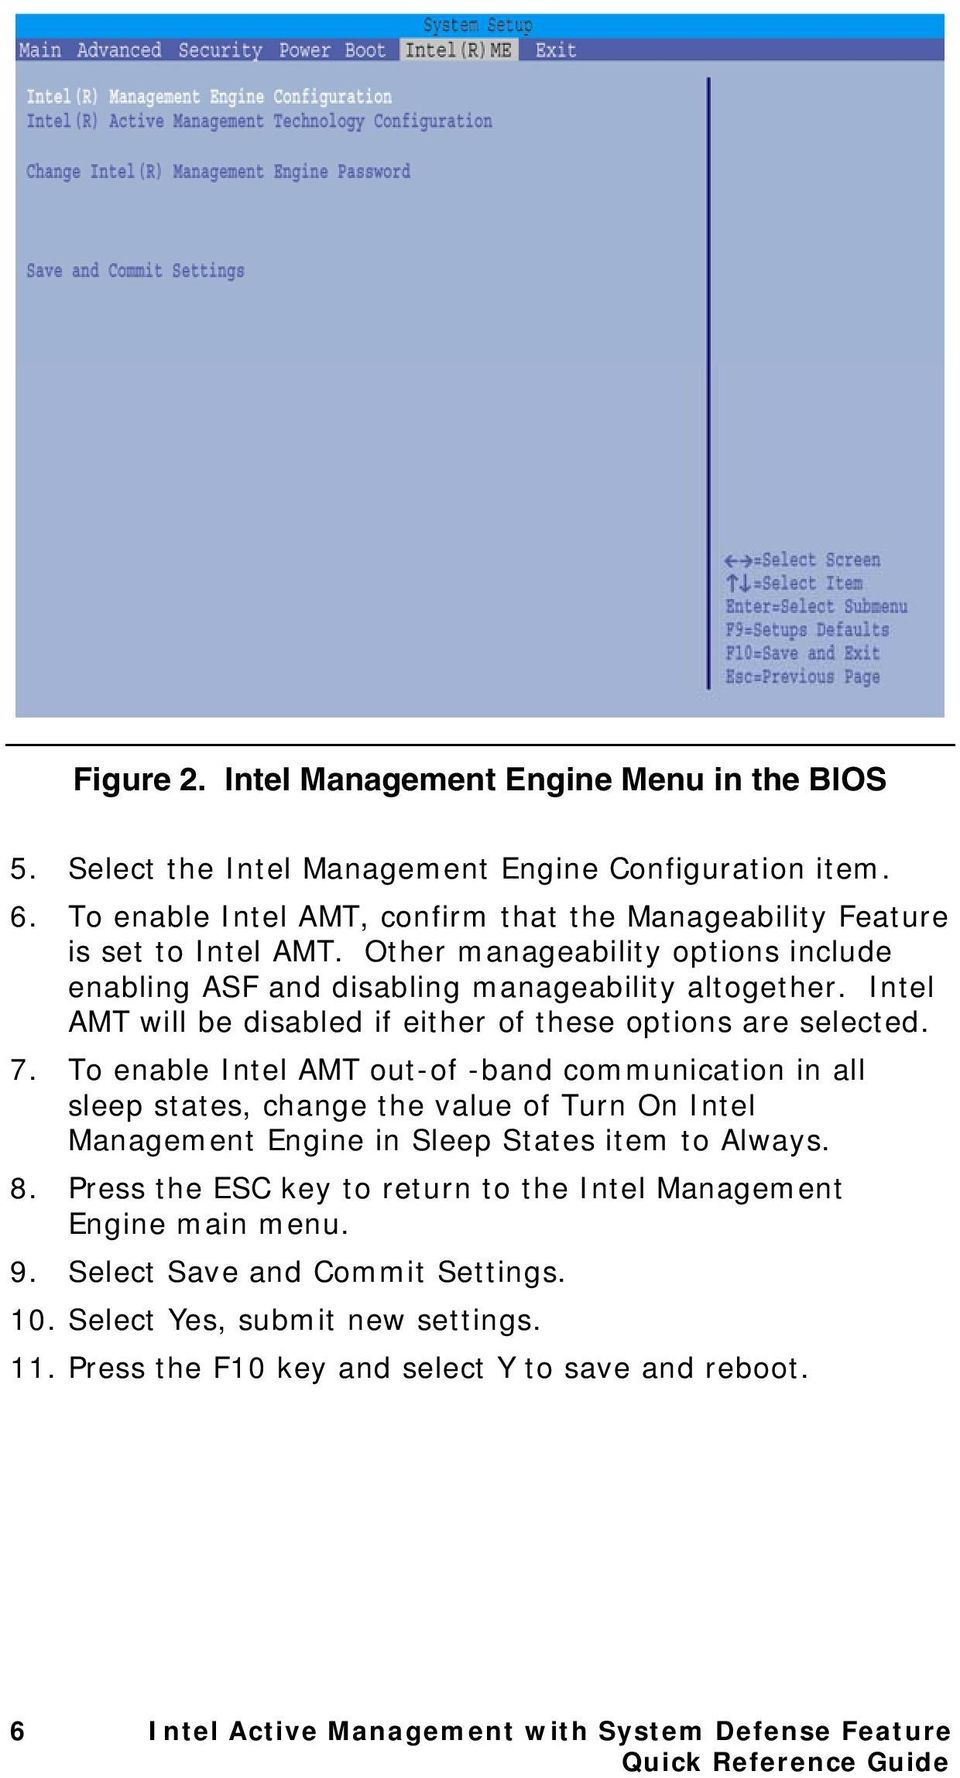 To enable Intel AMT out-of -band communication in all sleep states, change the value of Turn On Intel Management Engine in Sleep States item to Always. 8.